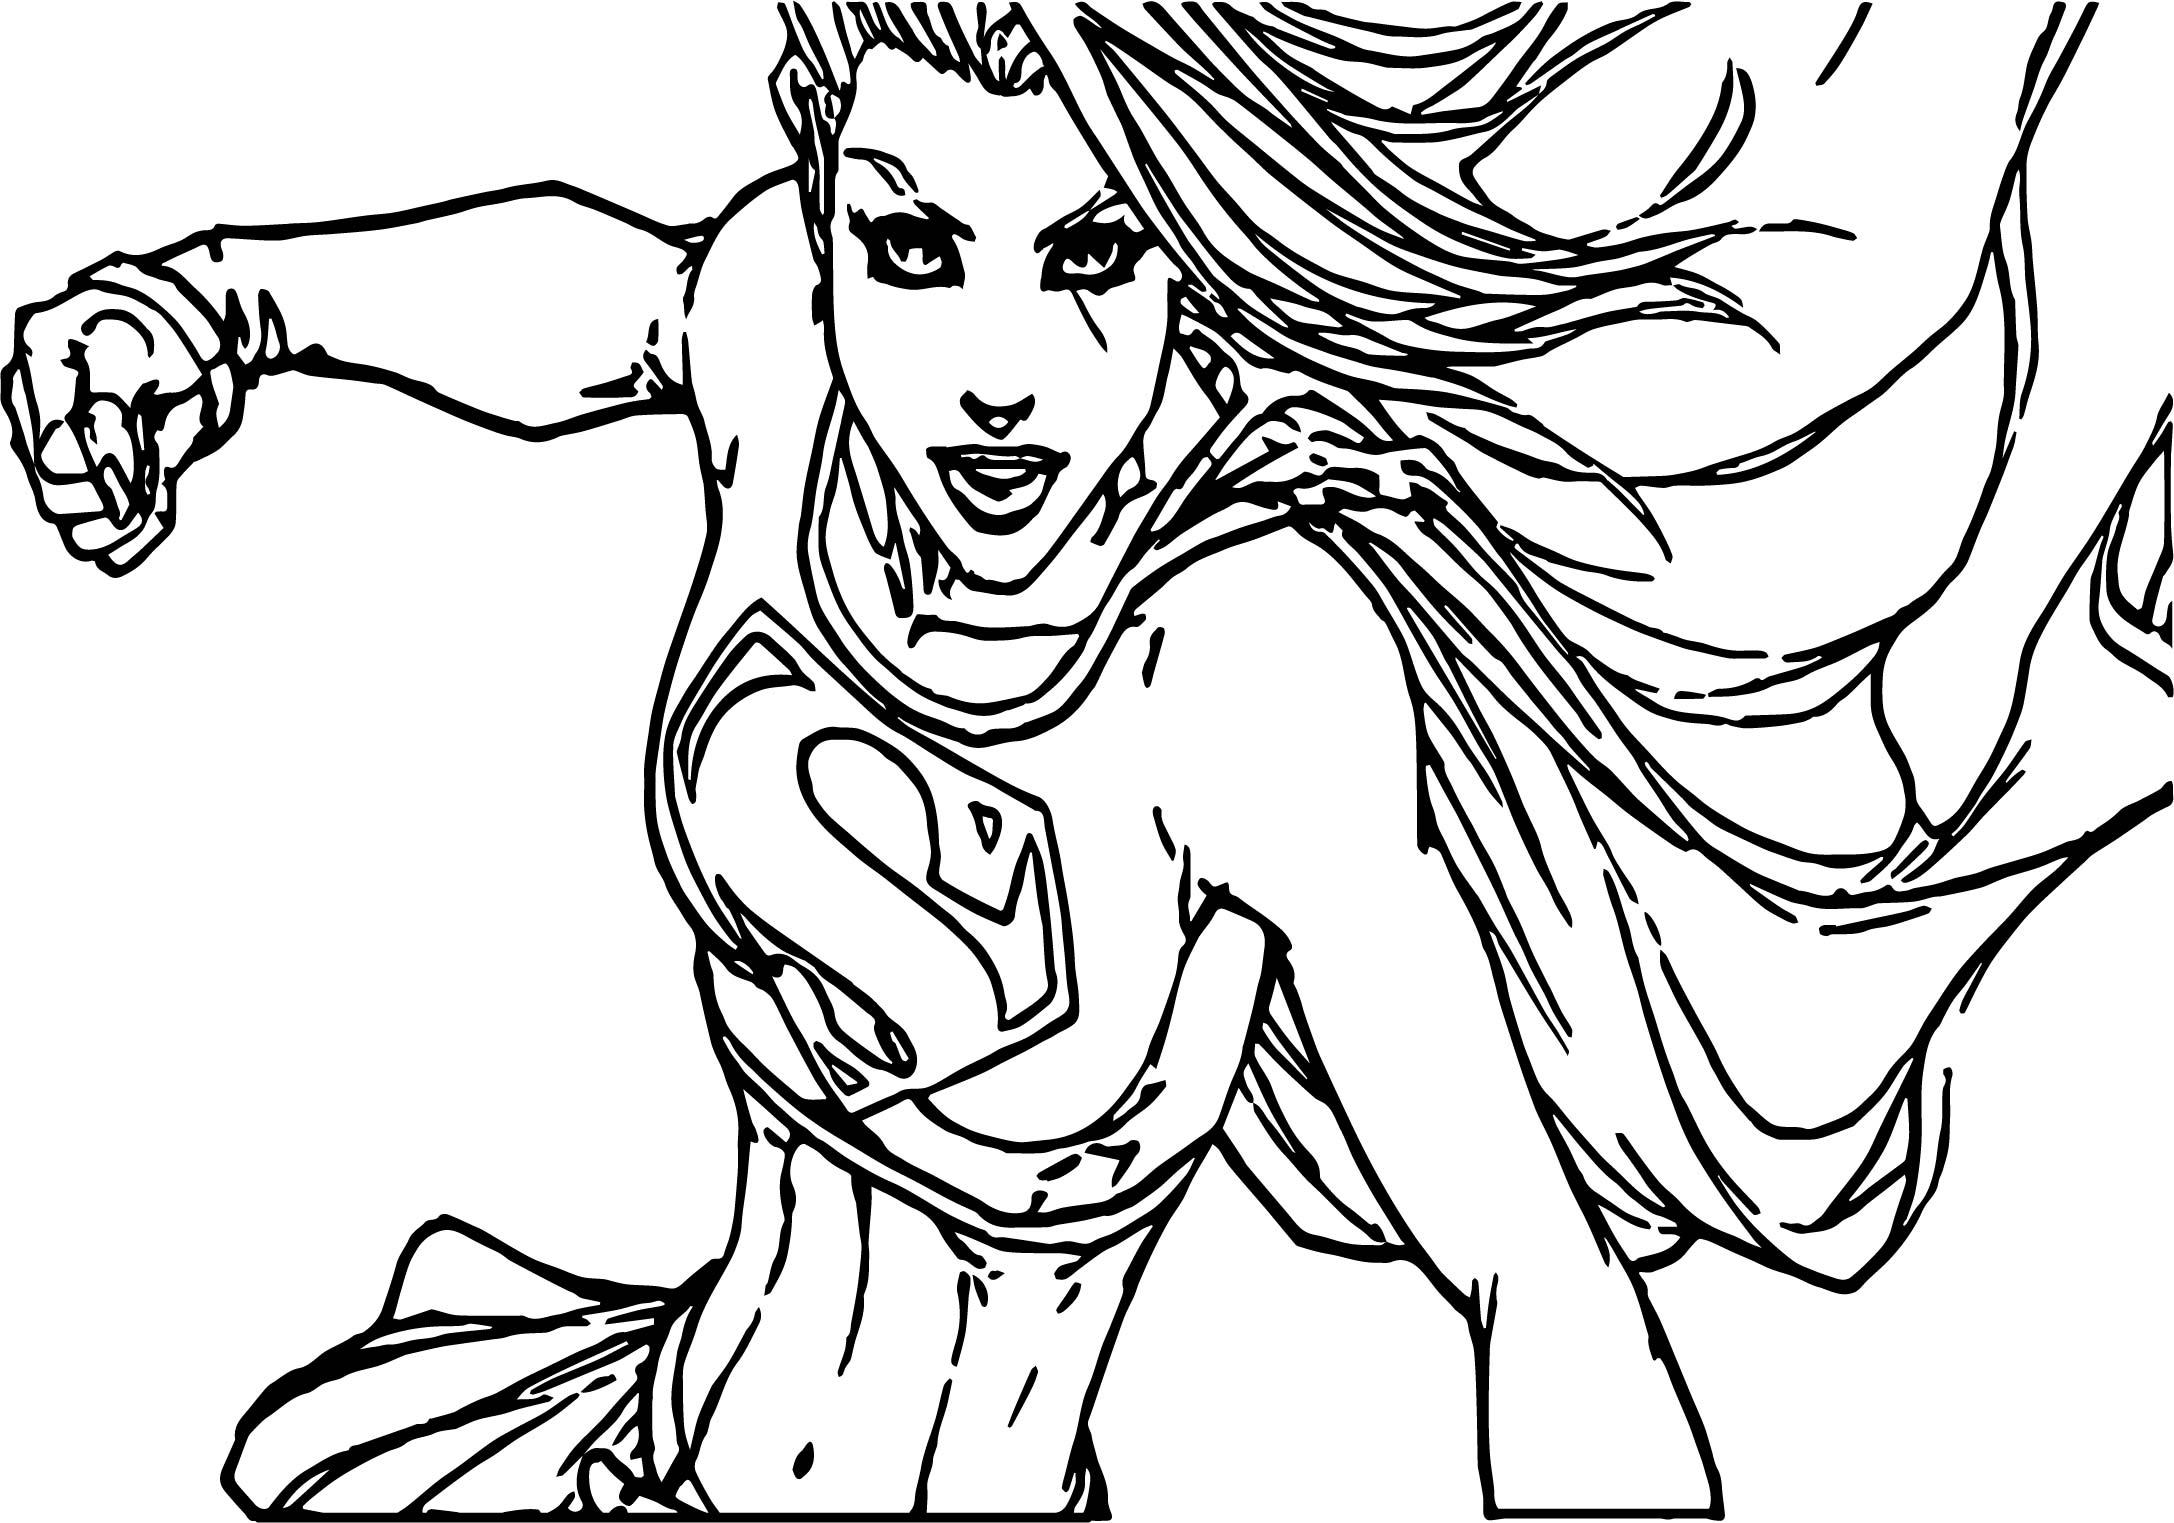 Superman Girl Superheroes Super Hero Coloring Page